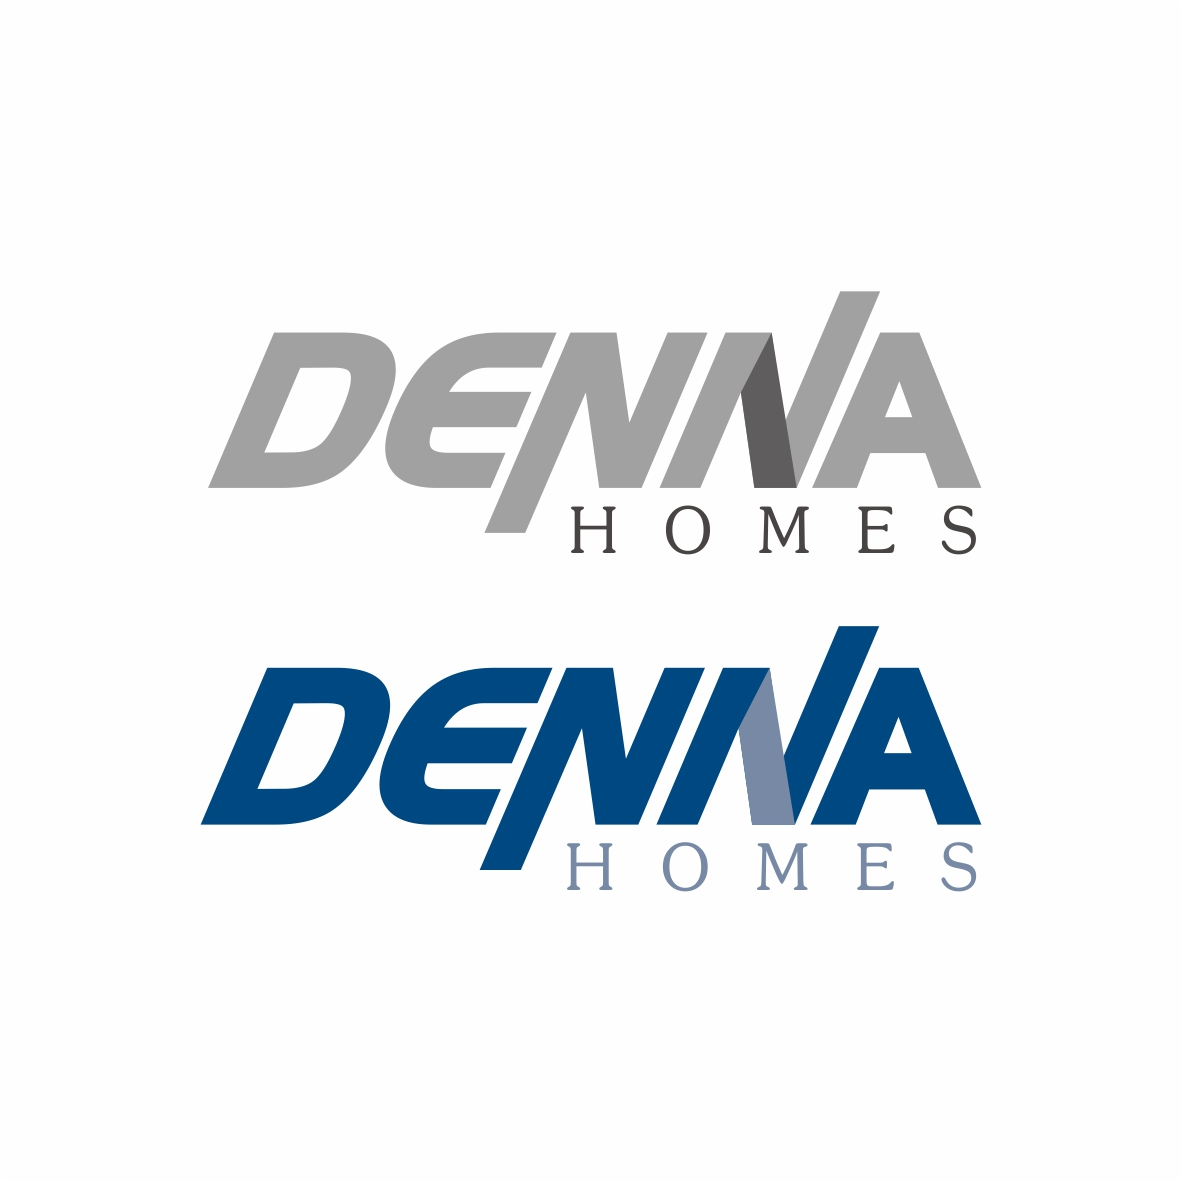 Logo Design by arteo_design - Entry No. 306 in the Logo Design Contest Denna Group Logo Design.